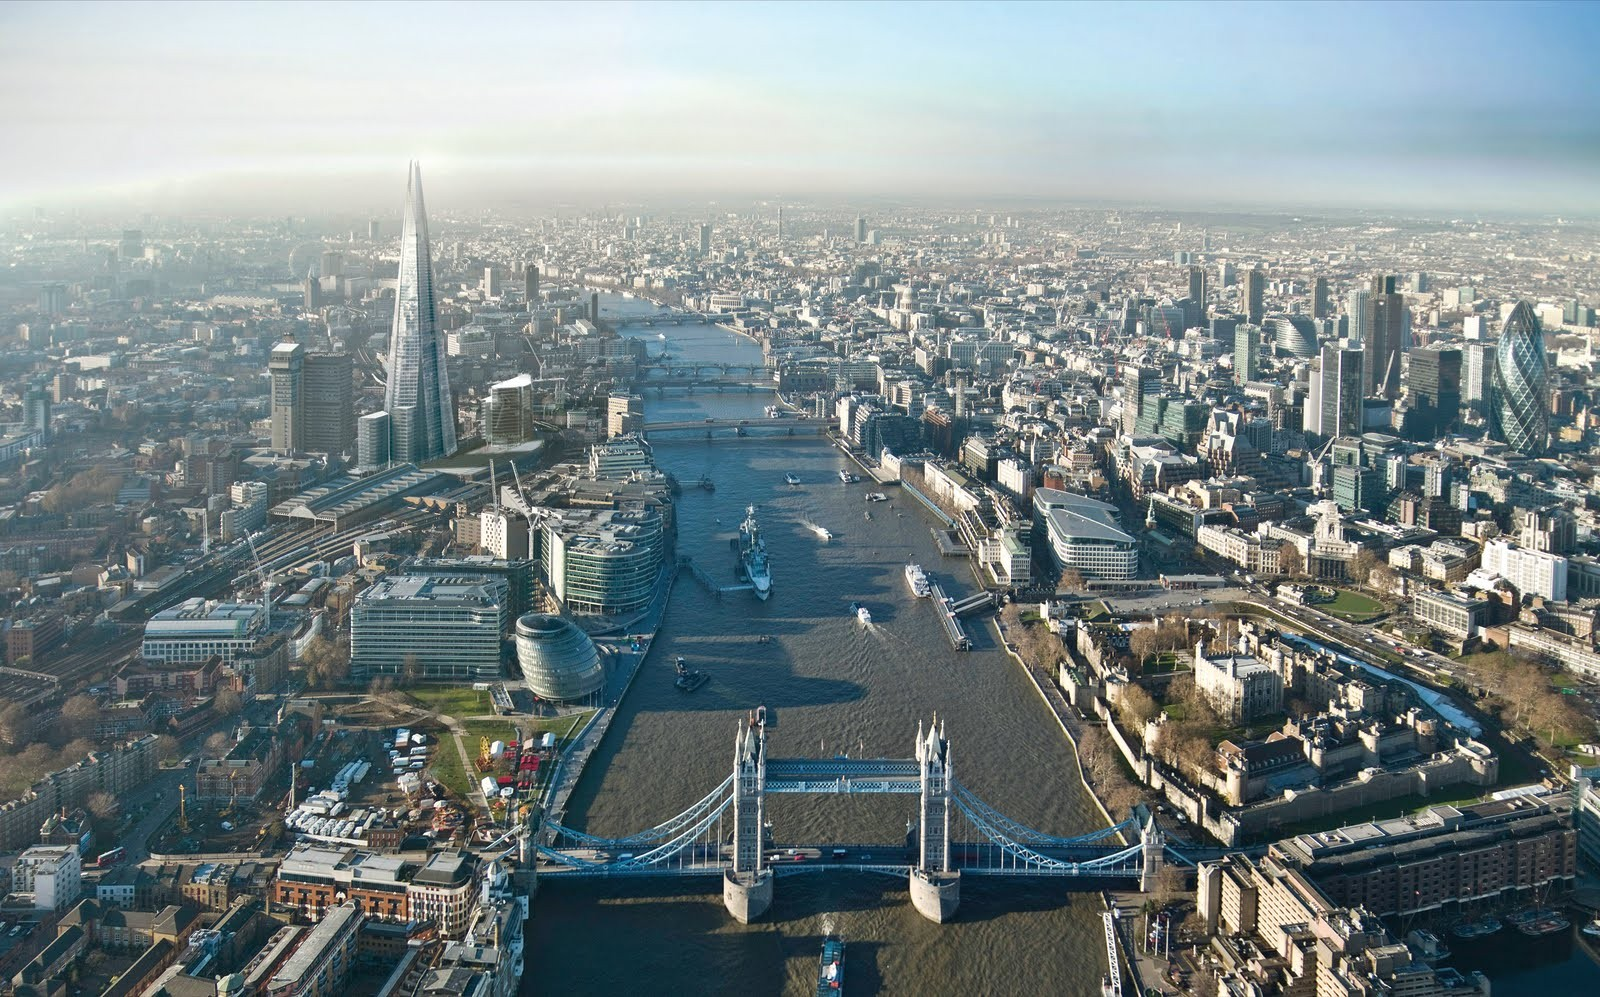 Call for Submissions: New Ideas for Housing London, The dense centre of London